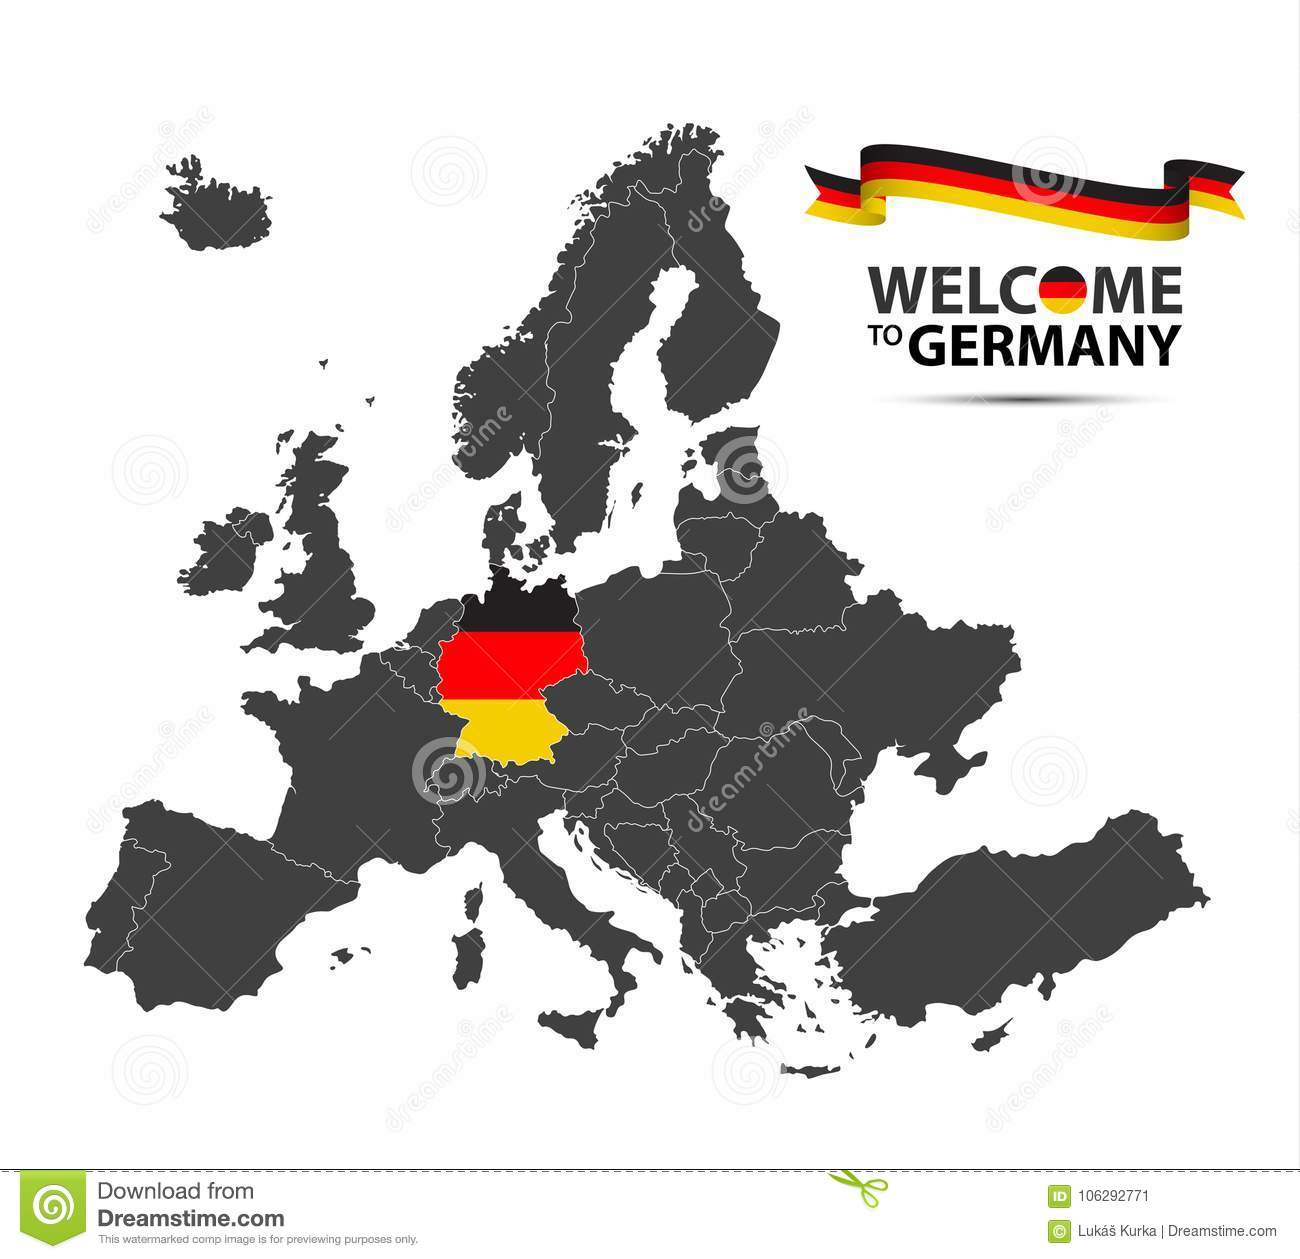 Germany Map Of Europe.Vector Illustration Of A Map Of Europe With The State Of Germany